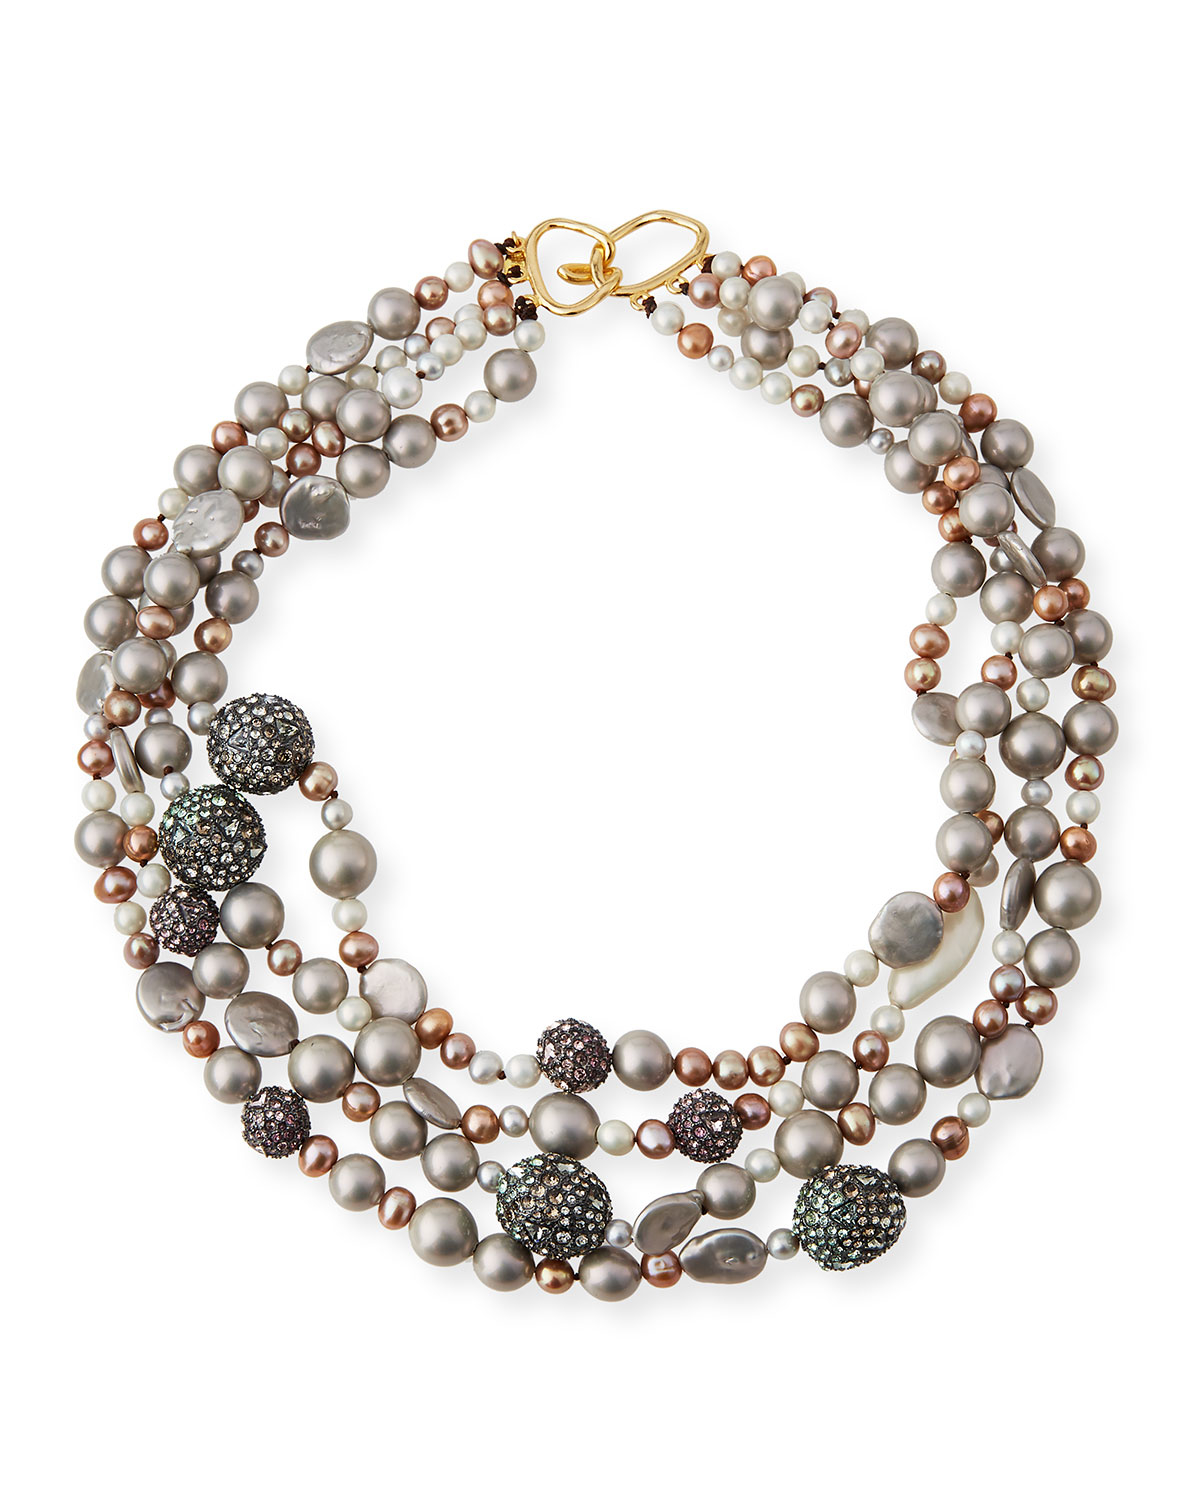 robert morris pav 233 nugget necklace necklaces bittar three strand pearly bead pav 233 sphere bib